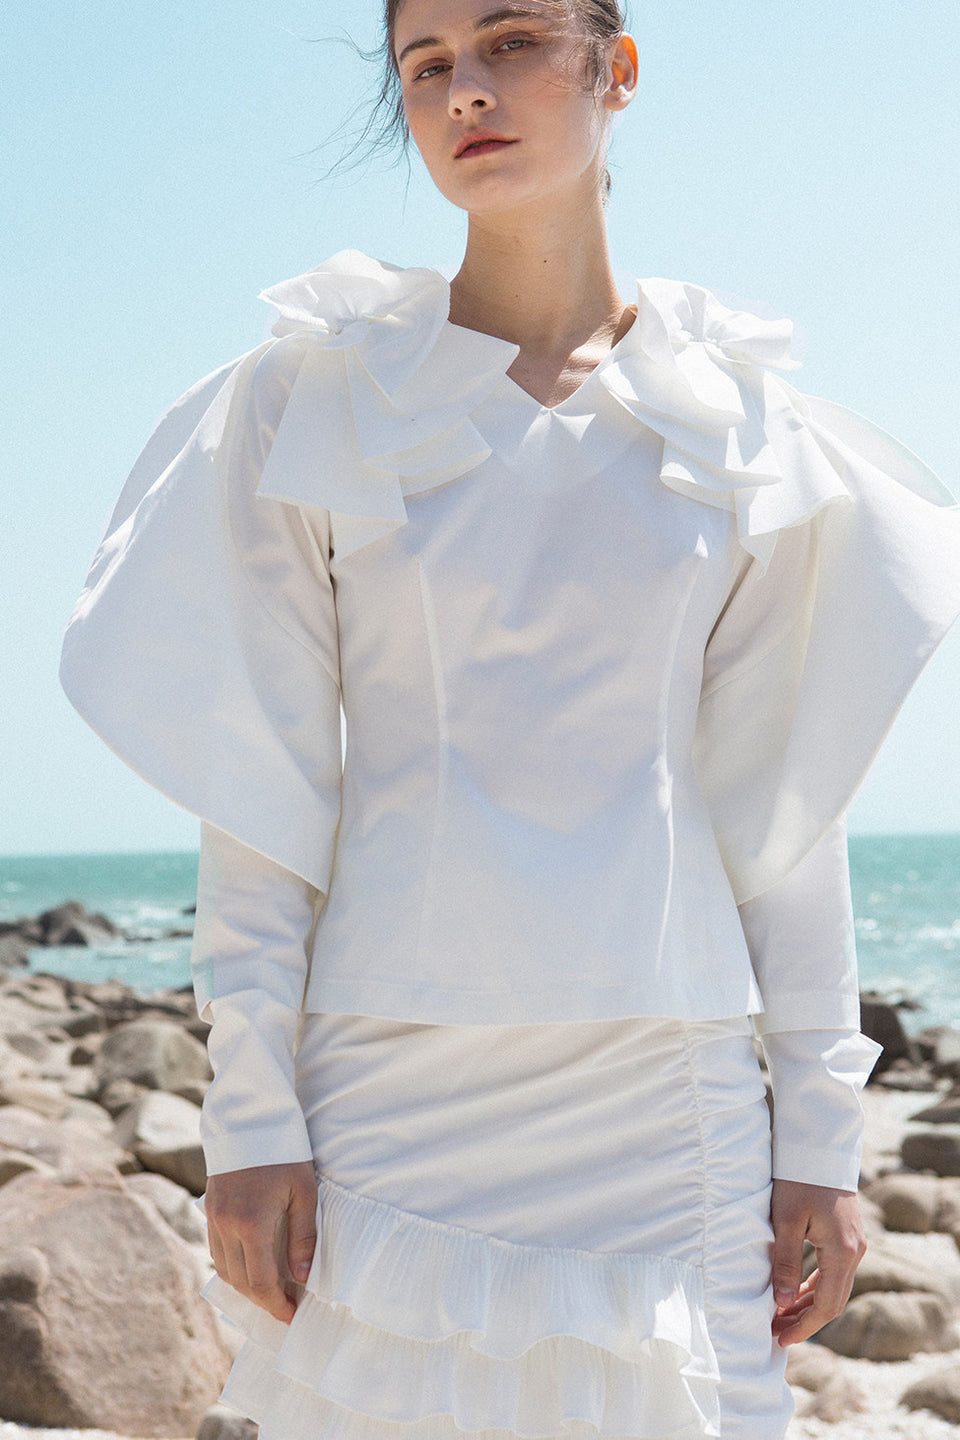 The Krikoi Top in White featuring v-neckline, swirling petal sleeves, slit at cuffs with zipper. Center back zip closure. Slim fit at bodice.